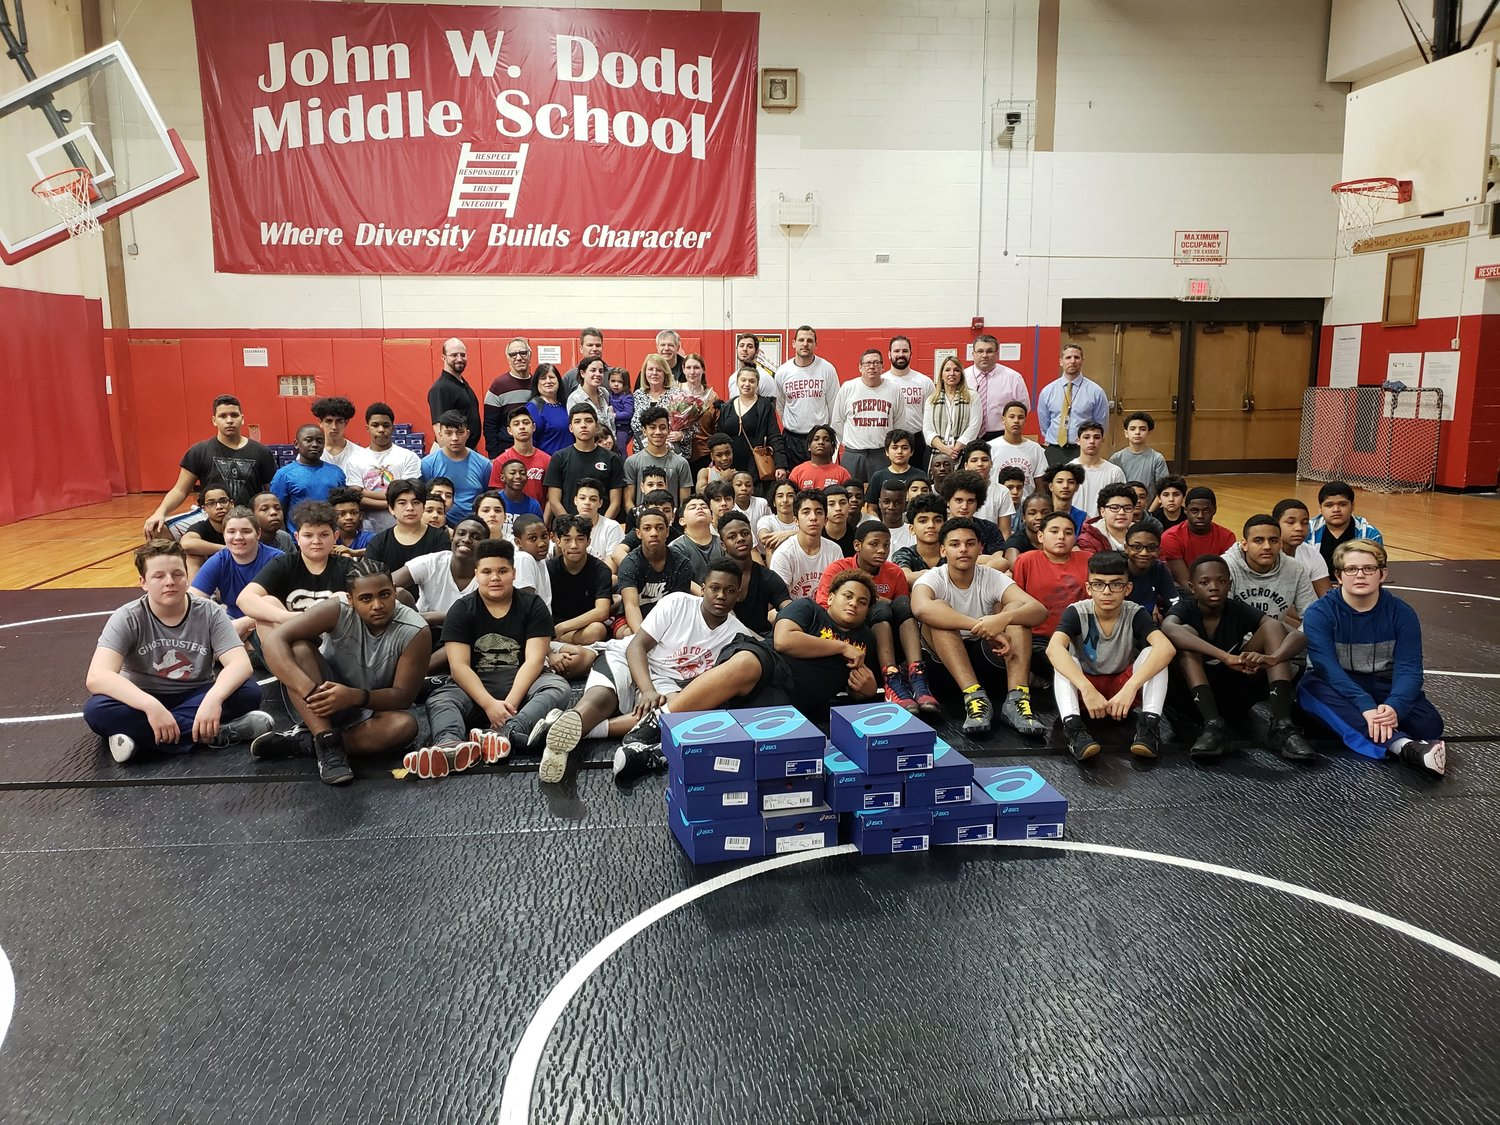 The entire J.W. Dodd Middle School team received new shoes.